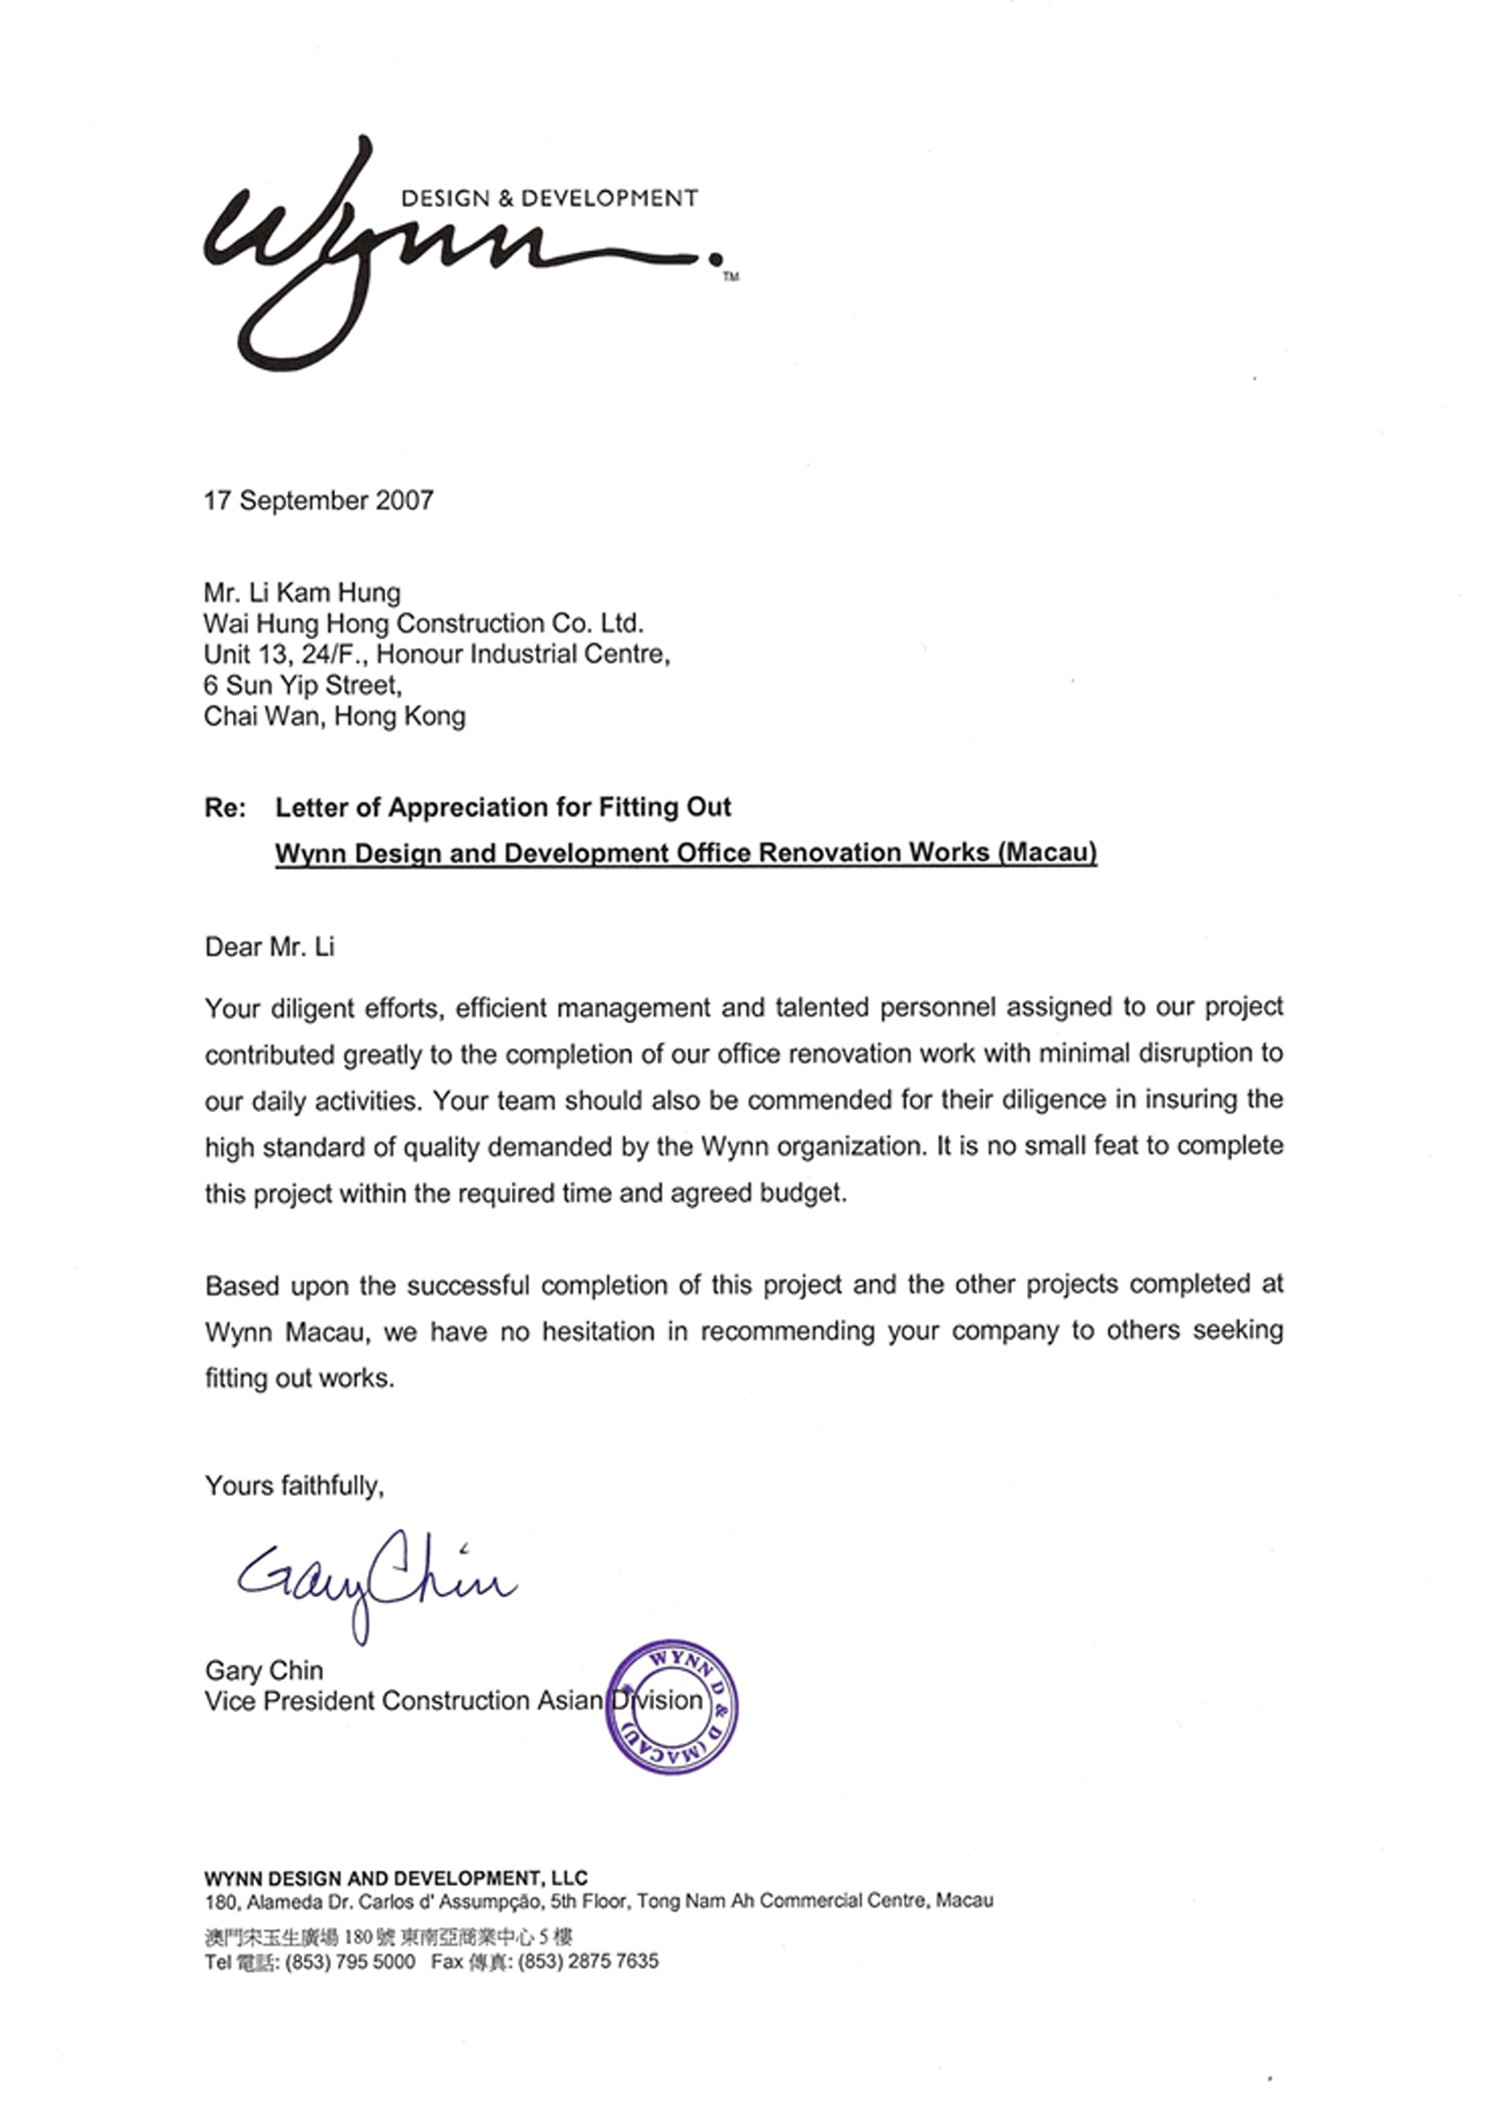 WYNN DESIGN & DEVELOPMENT - LETTER OF APPRECIATION